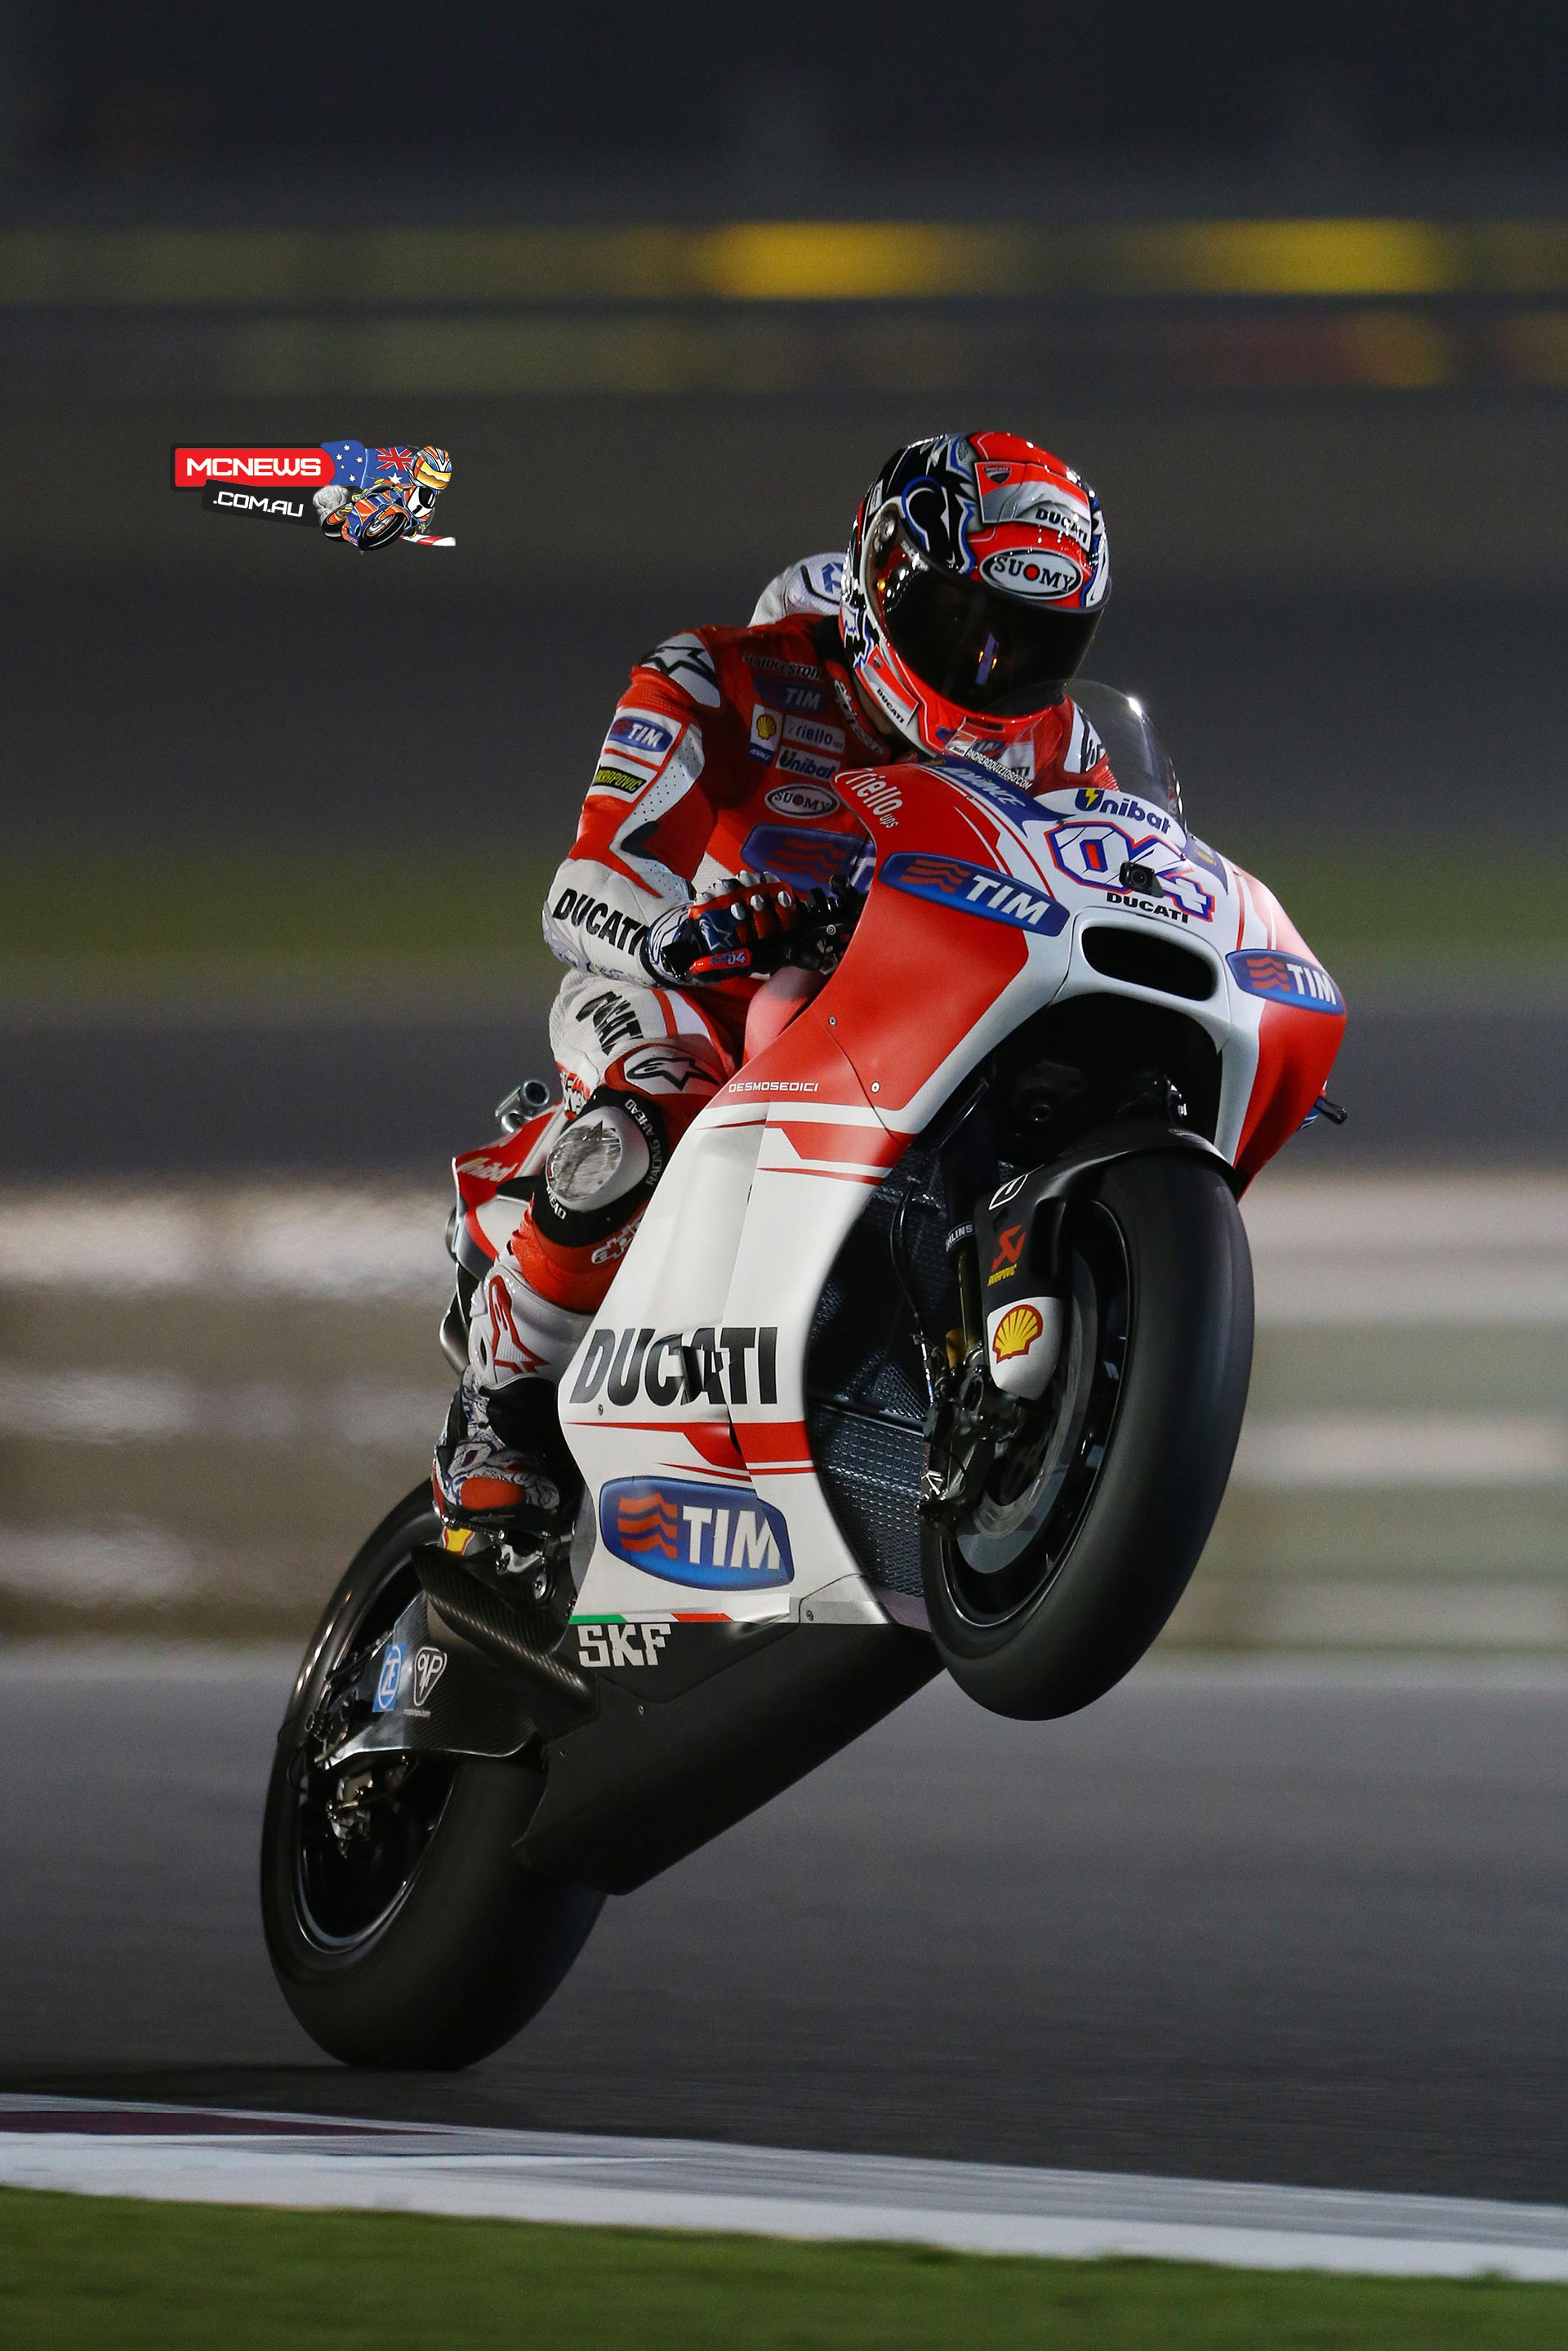 Andrea Dovizioso was pipped at the post for the win by Valentino Rossi in Qatar MotoGP 2015 season opener